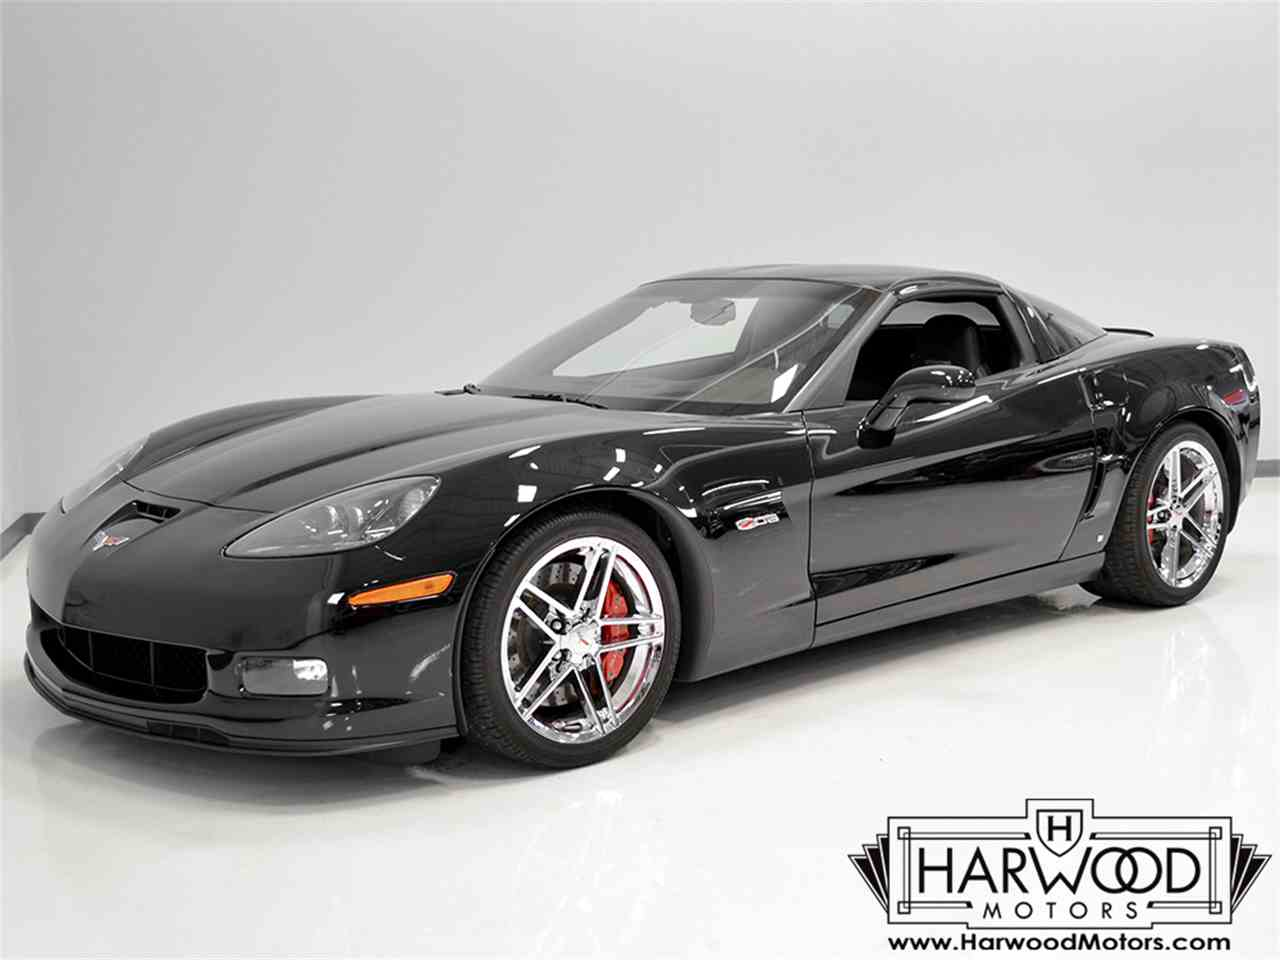 2009 Chevrolet Corvette Z06 for Sale - CC-902358